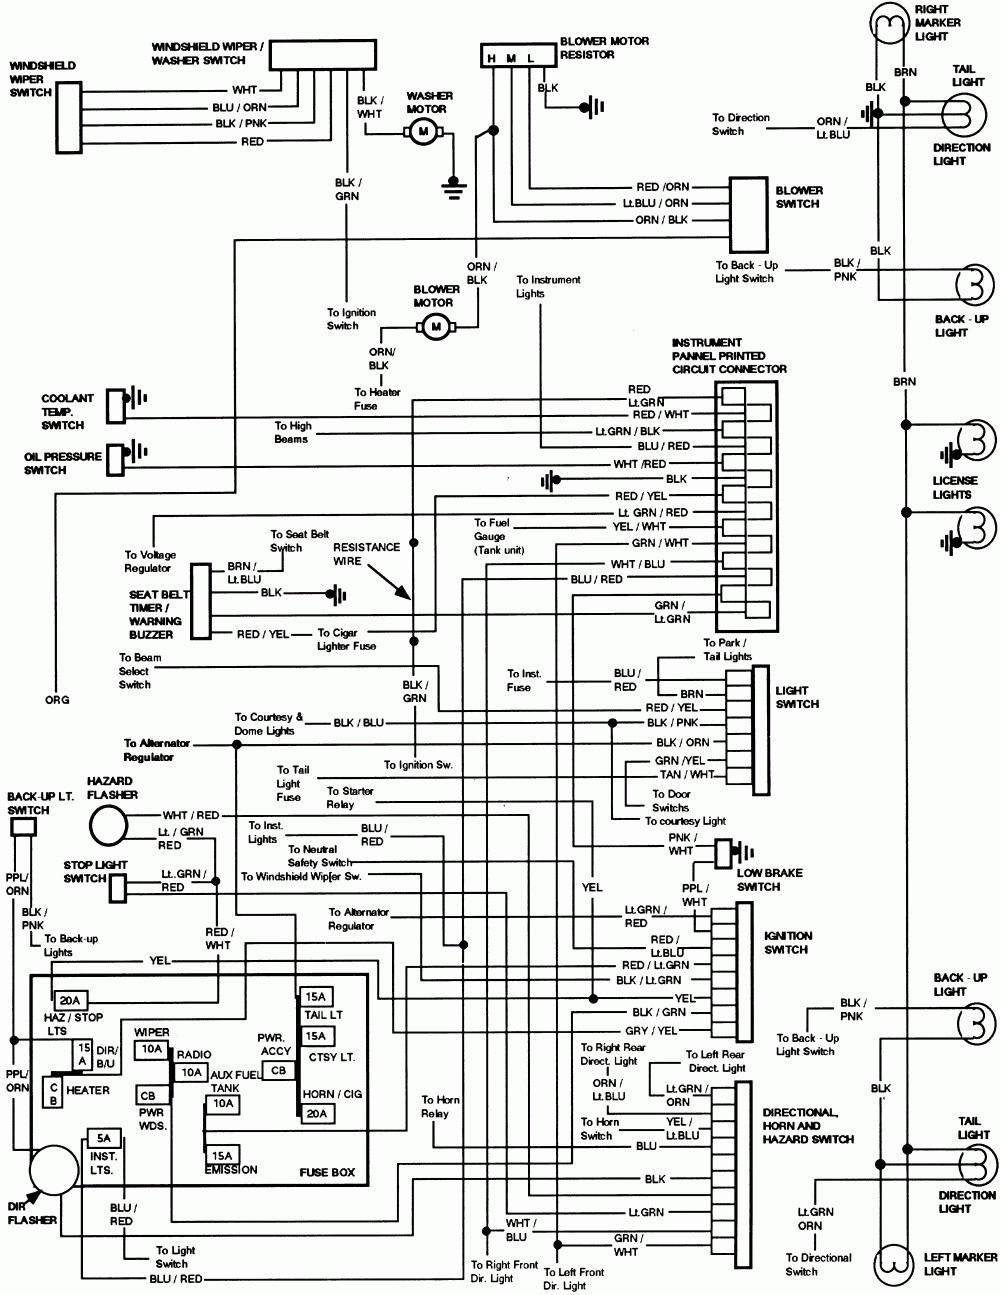 hight resolution of 73 ford f 250 ignition wiring wiring diagram sheet ford f 250 ignition wiring schema diagram